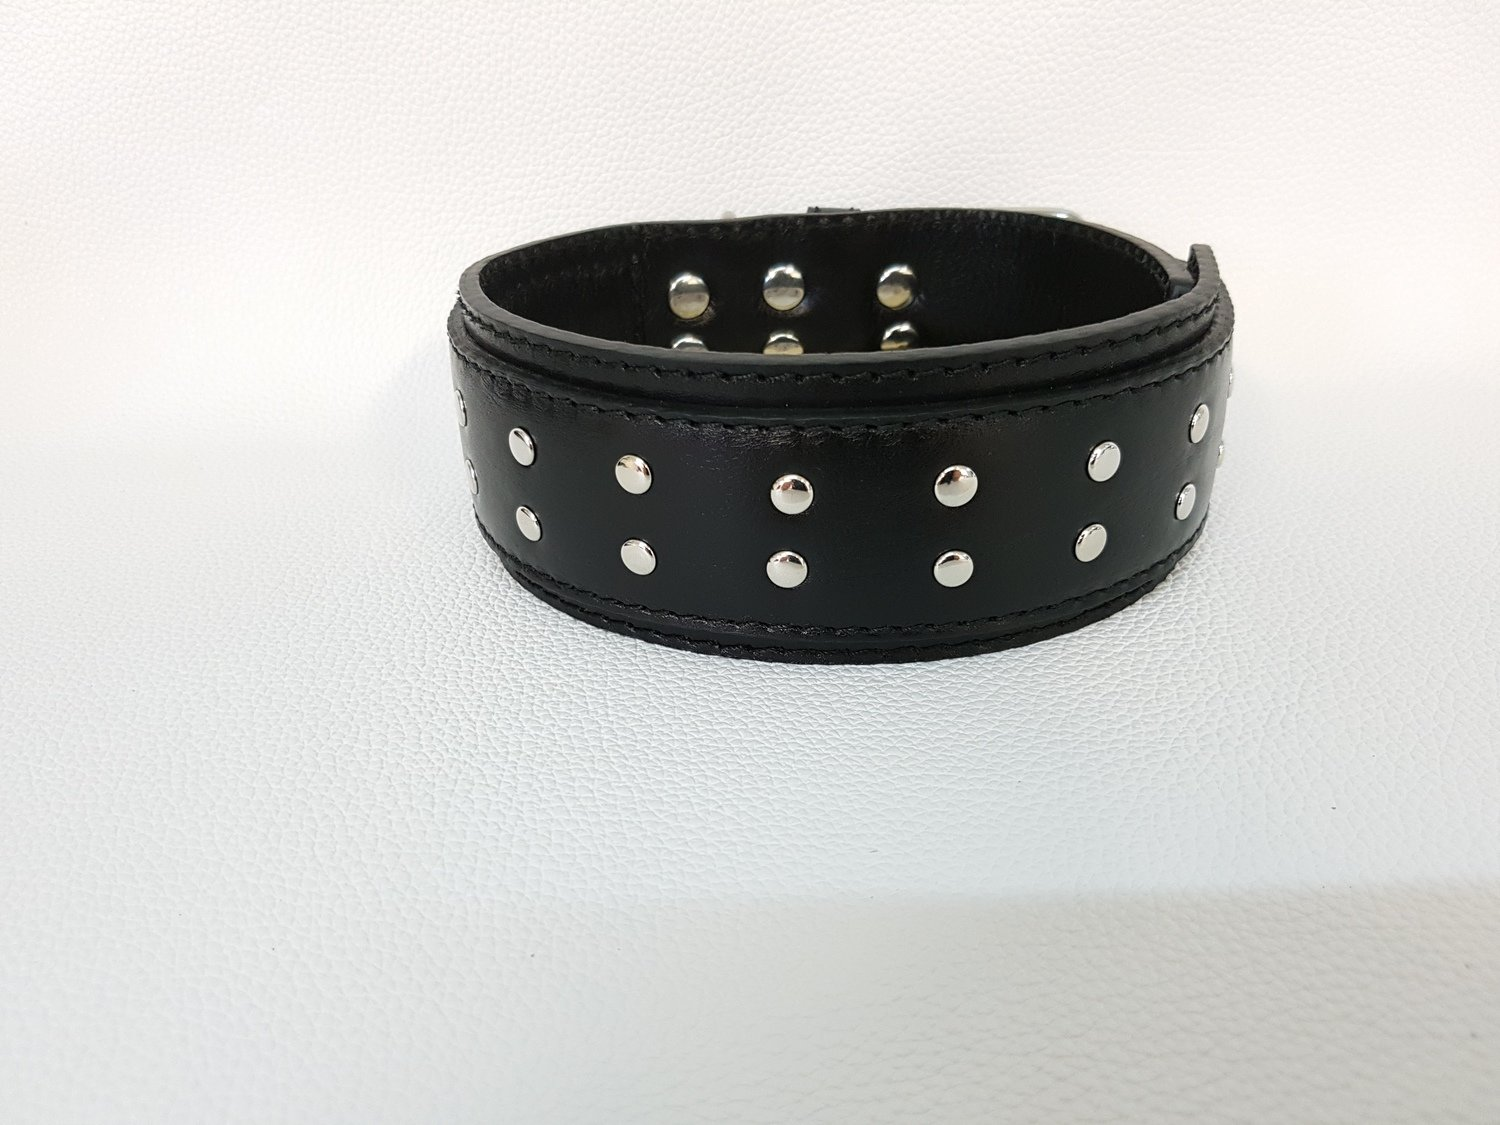 Nero / Black (5 cm / 1,97 inches)